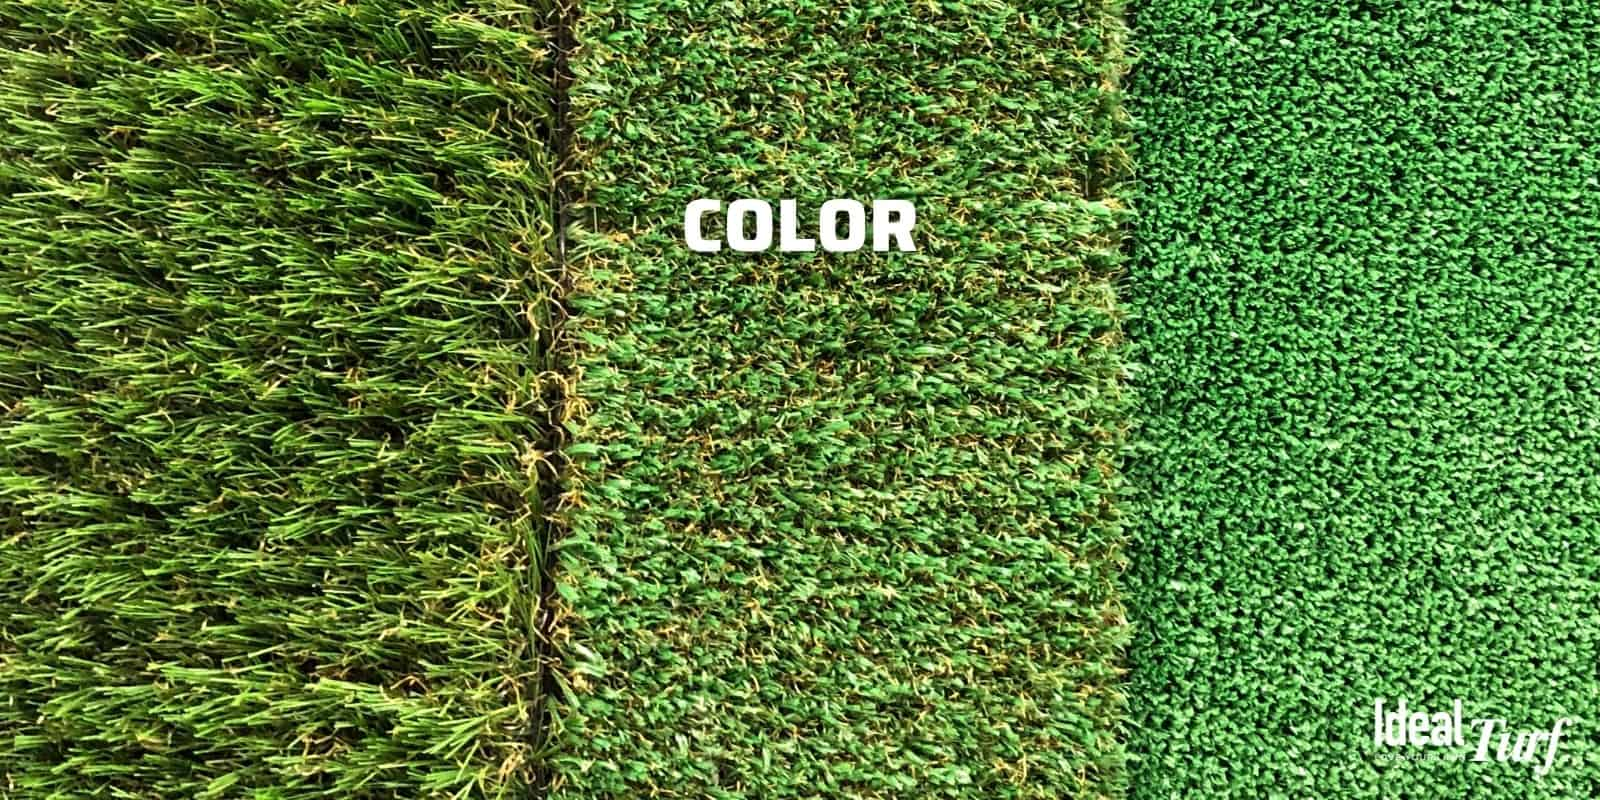 Three turf samples with different colors